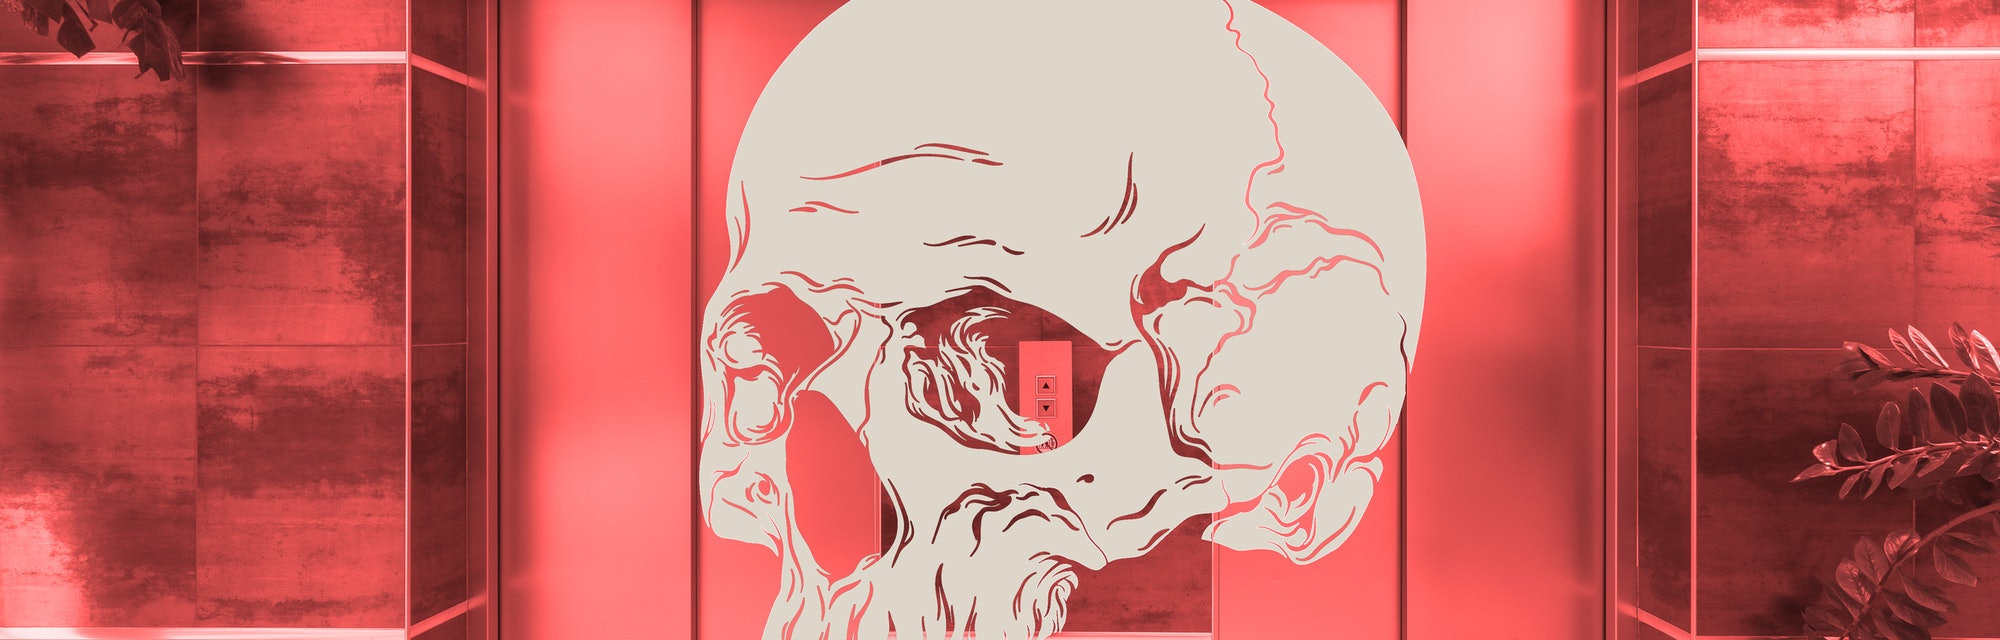 skull in front of two elevators with a red wash